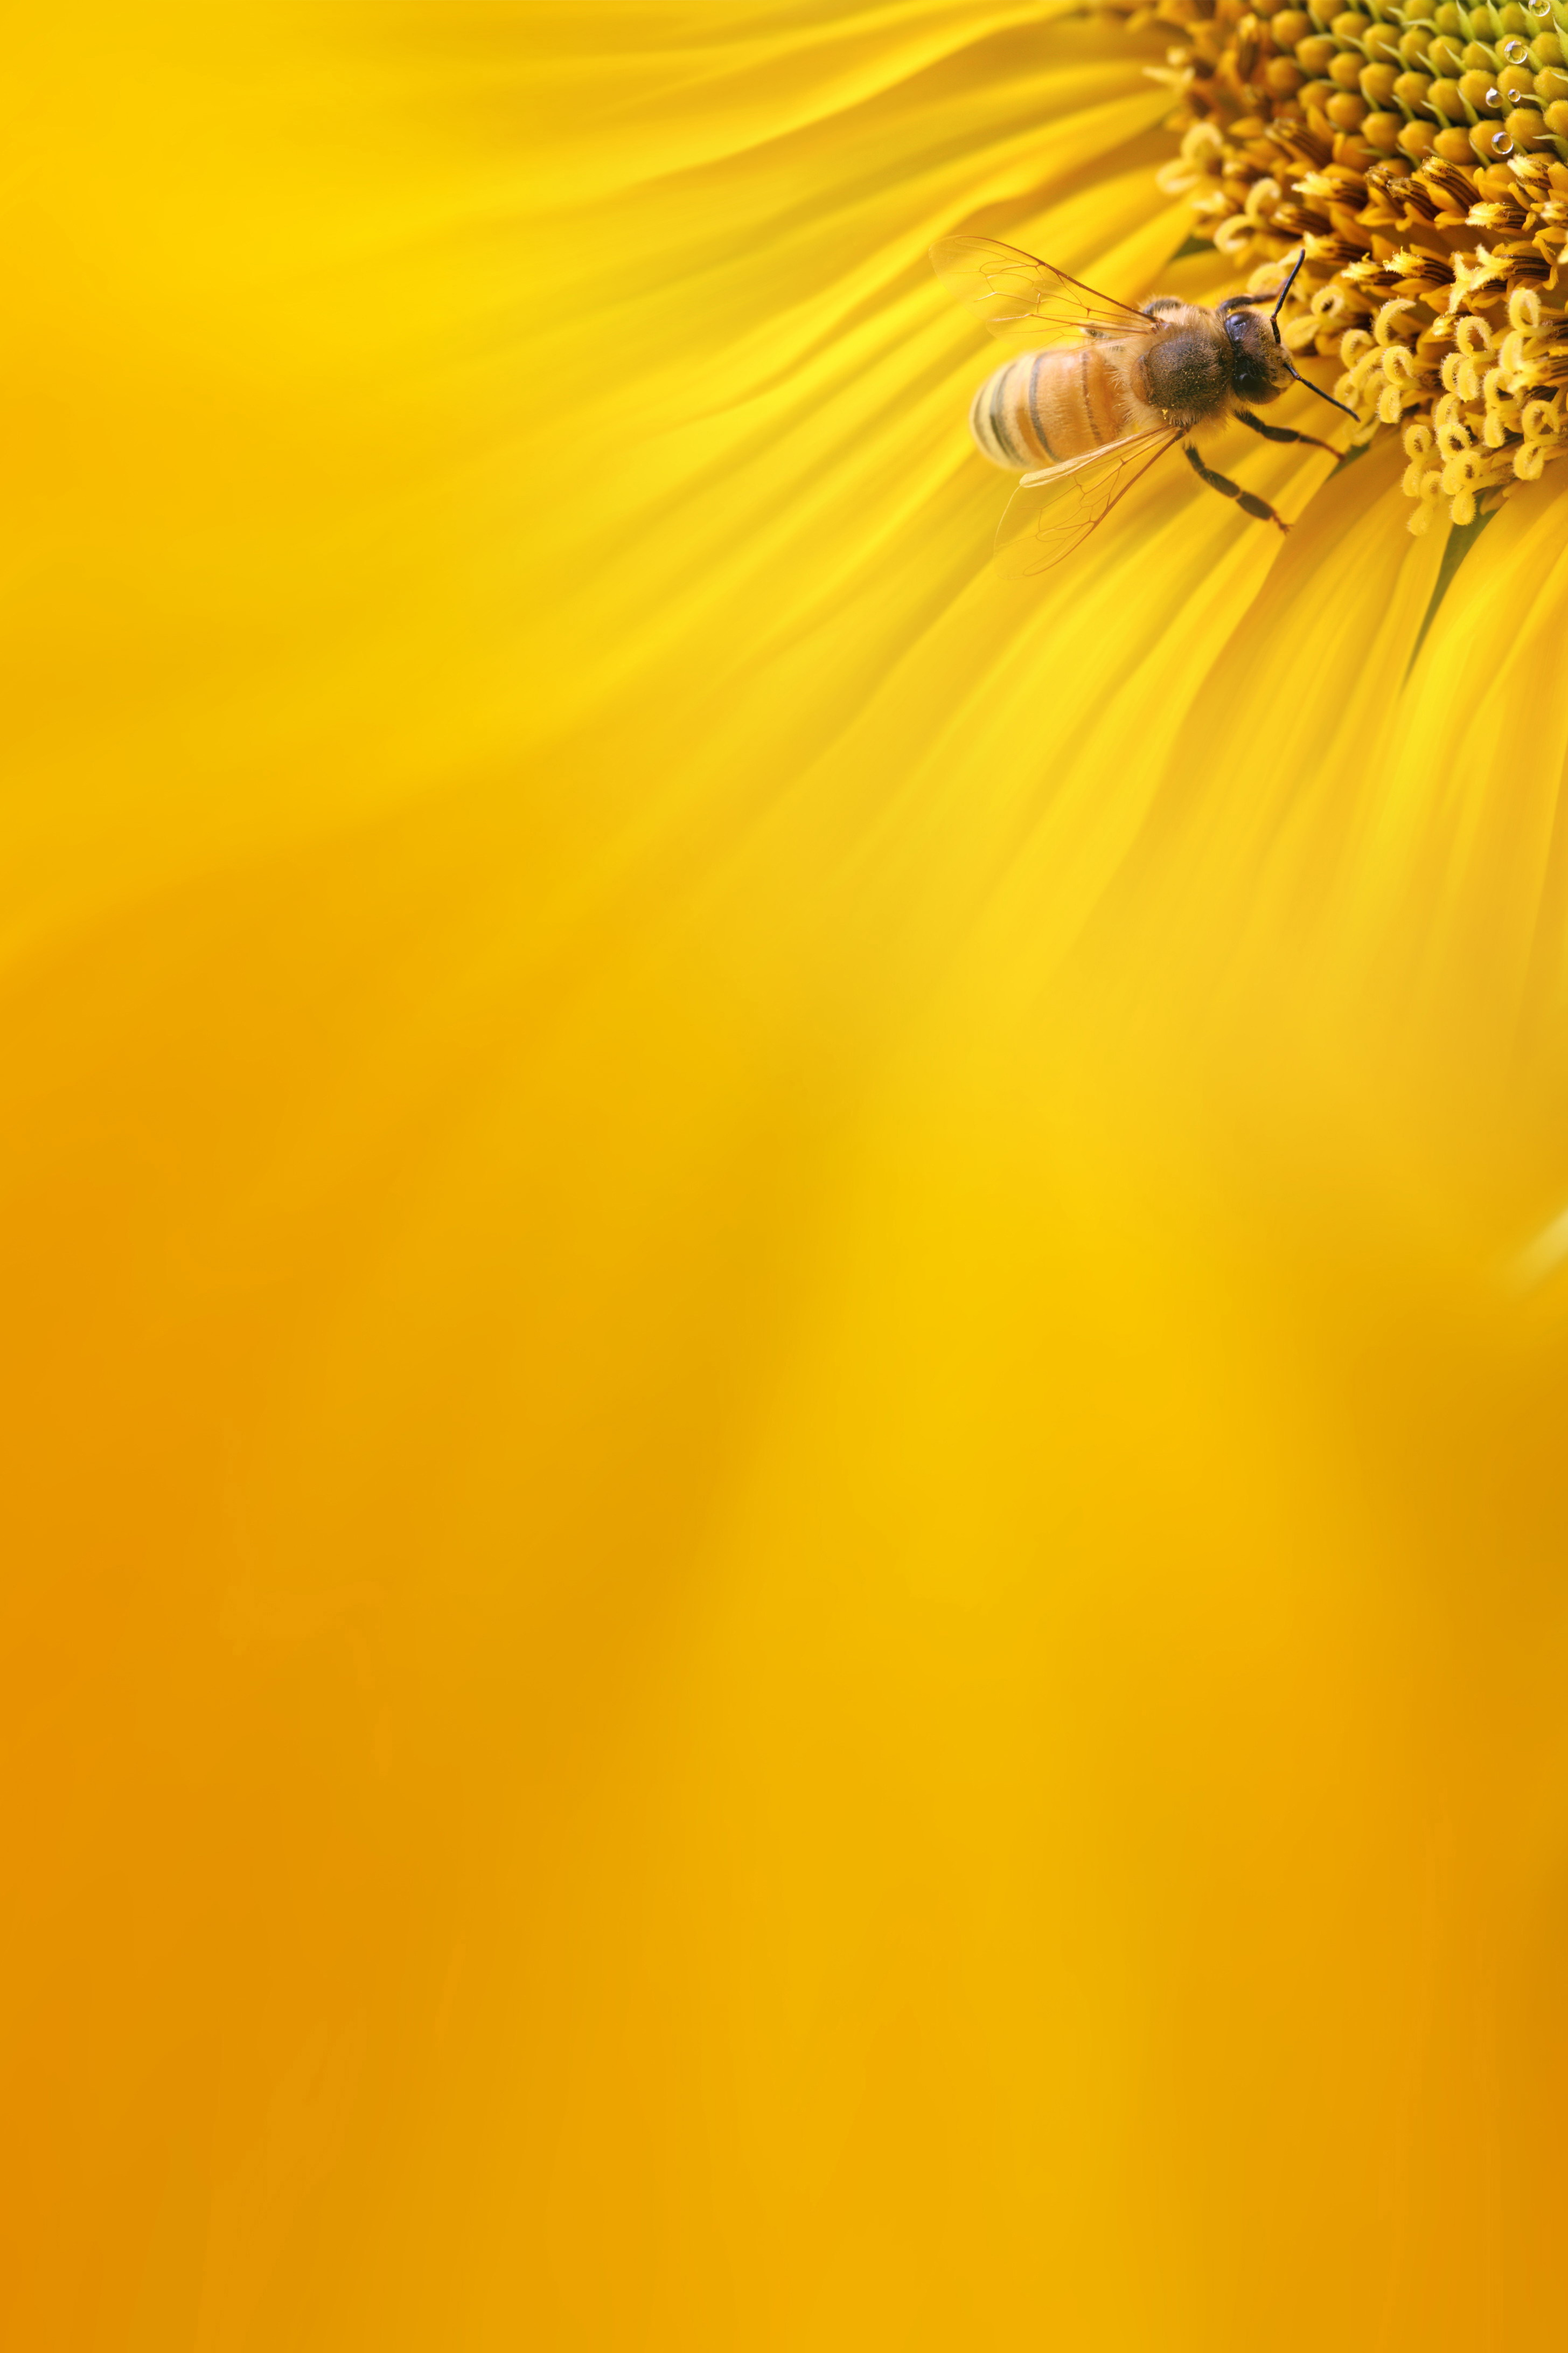 Honey Bees Background Bee Collecting Nectar Yellow Background Image For Free Download